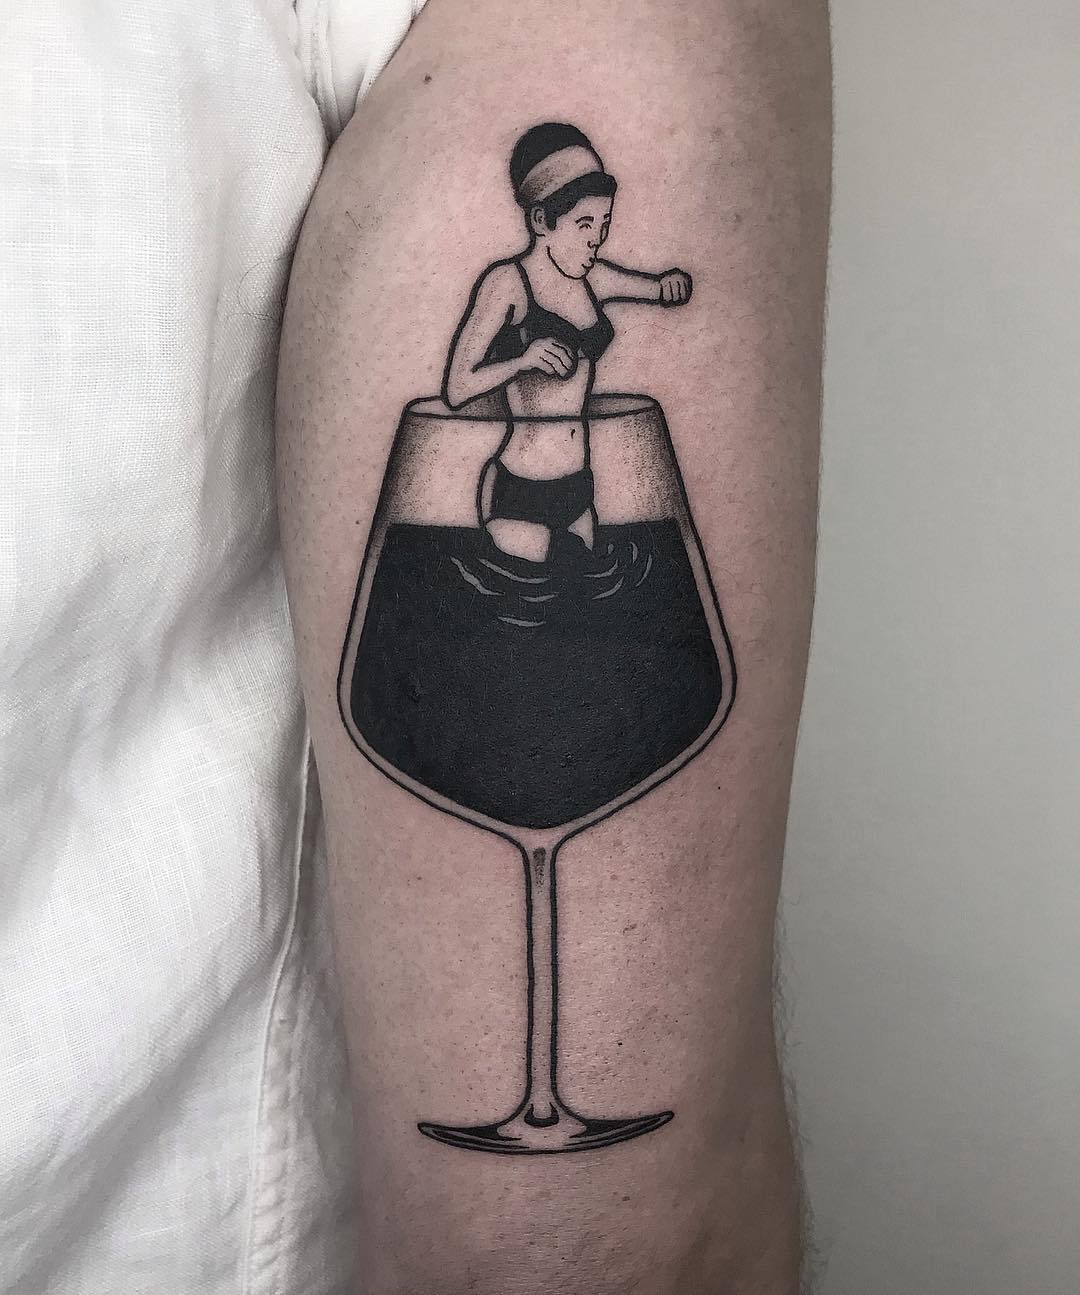 Woman in wineglass